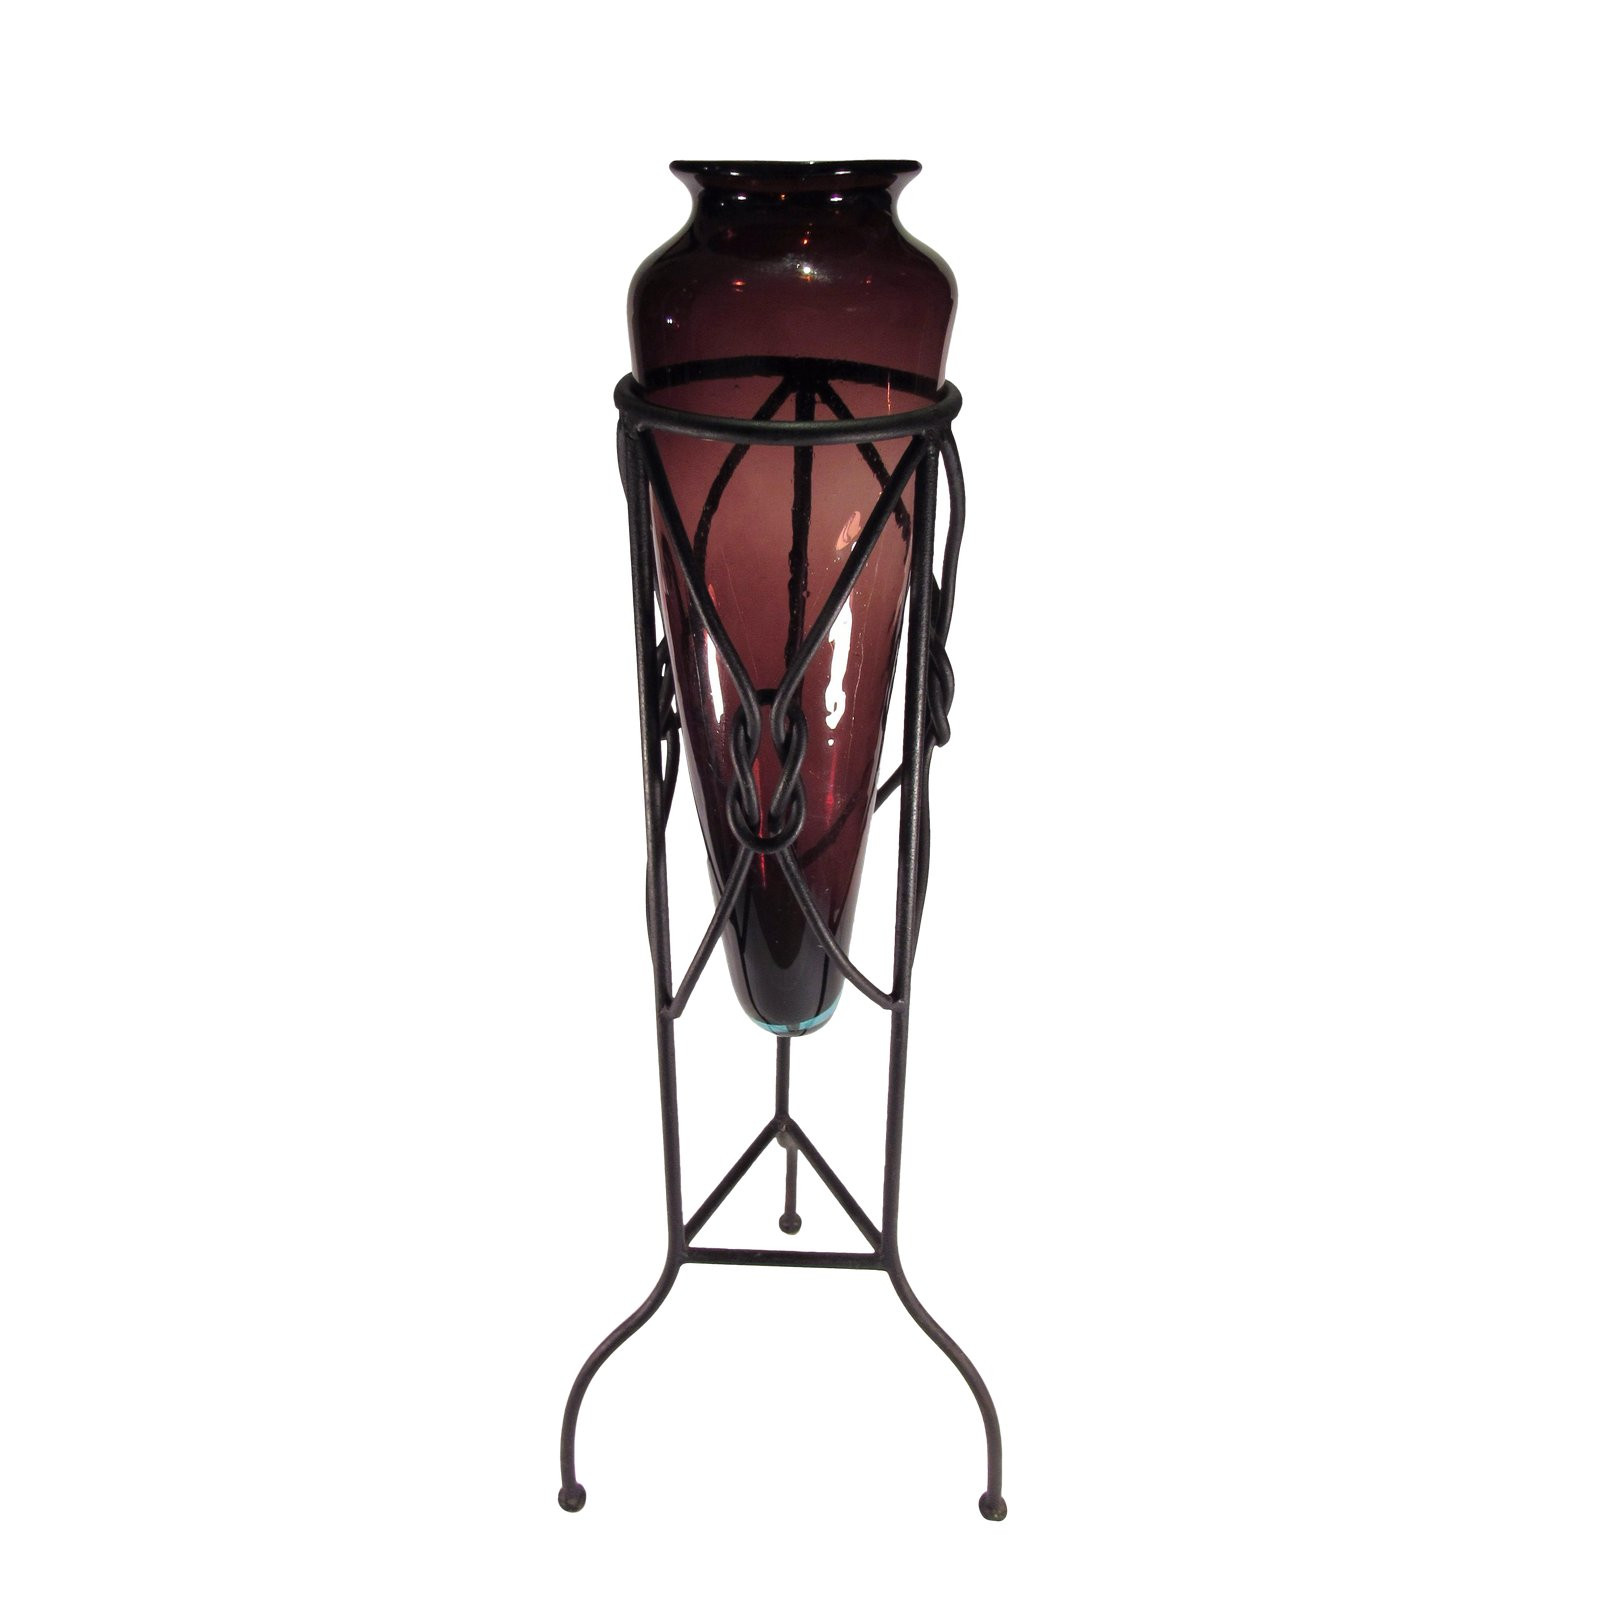 contemporary art glass vases of large amphora style glass vase in iron tripod stand chairish throughout large amphora style glass vase in iron tripod stand 8677